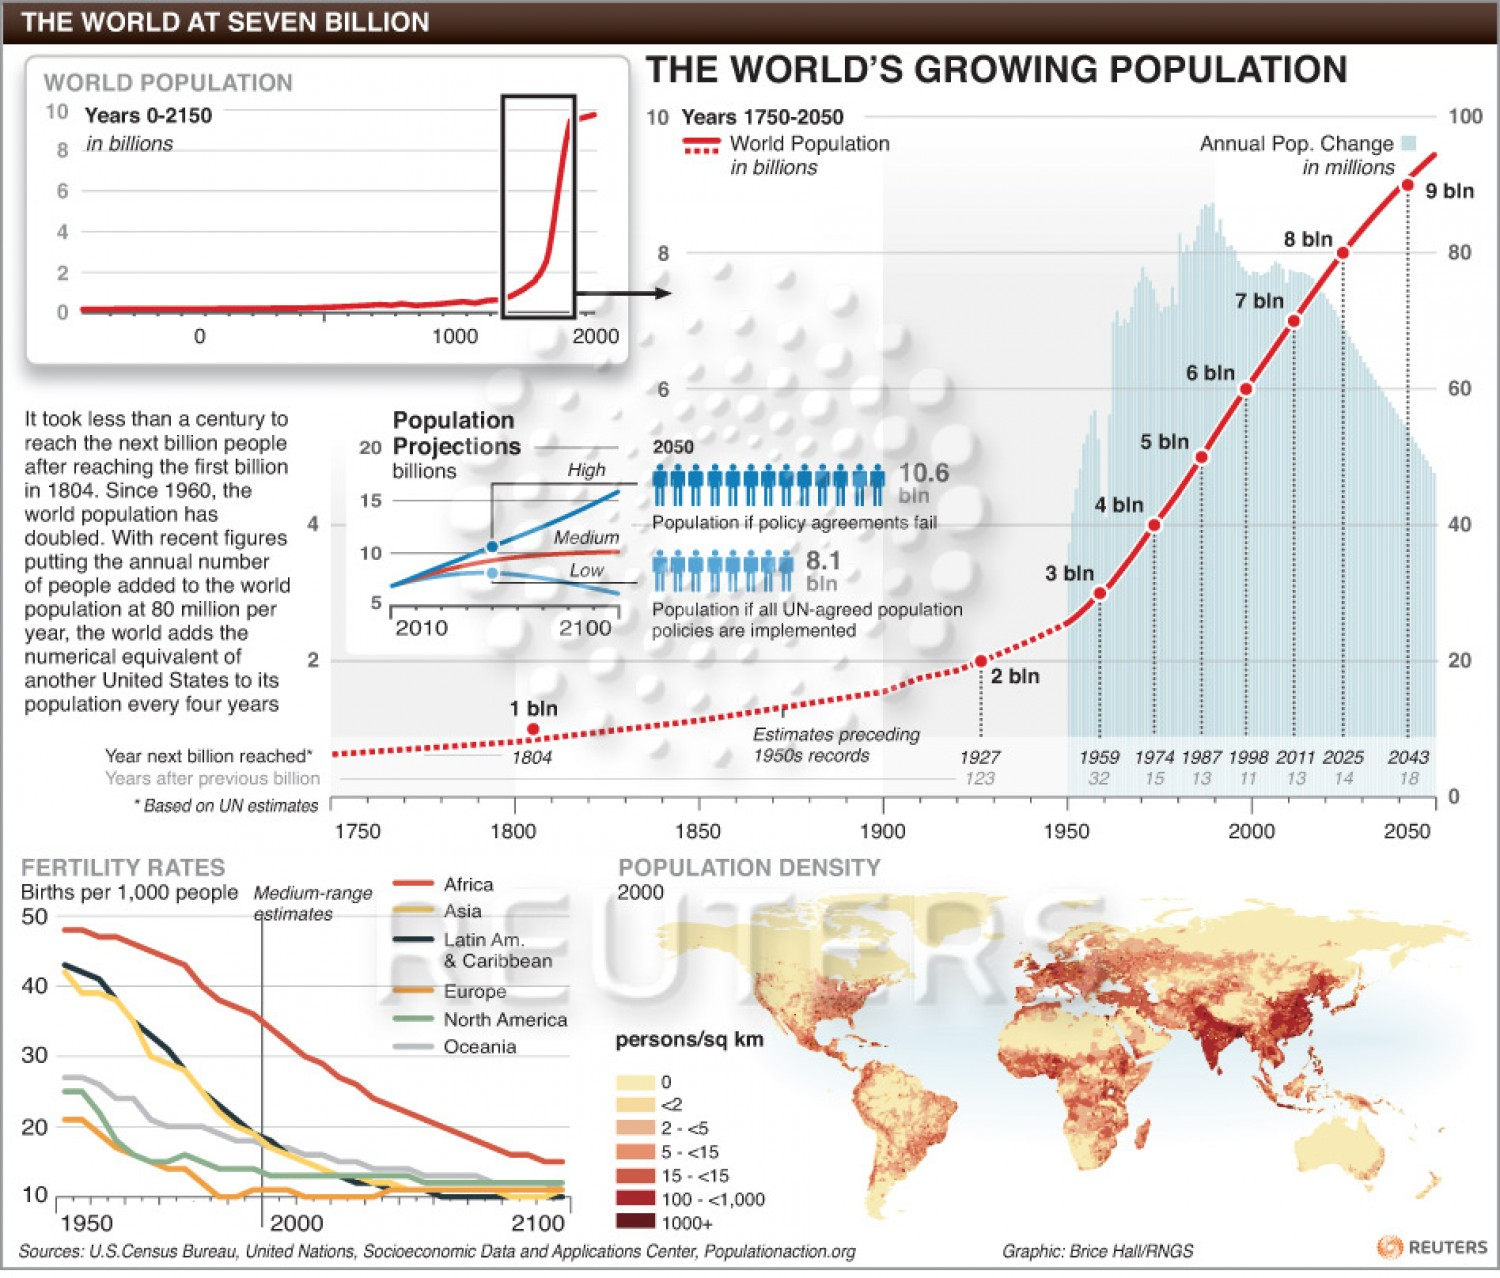 the-world-at-7-billion--growing-population_5029163599ced_w1500